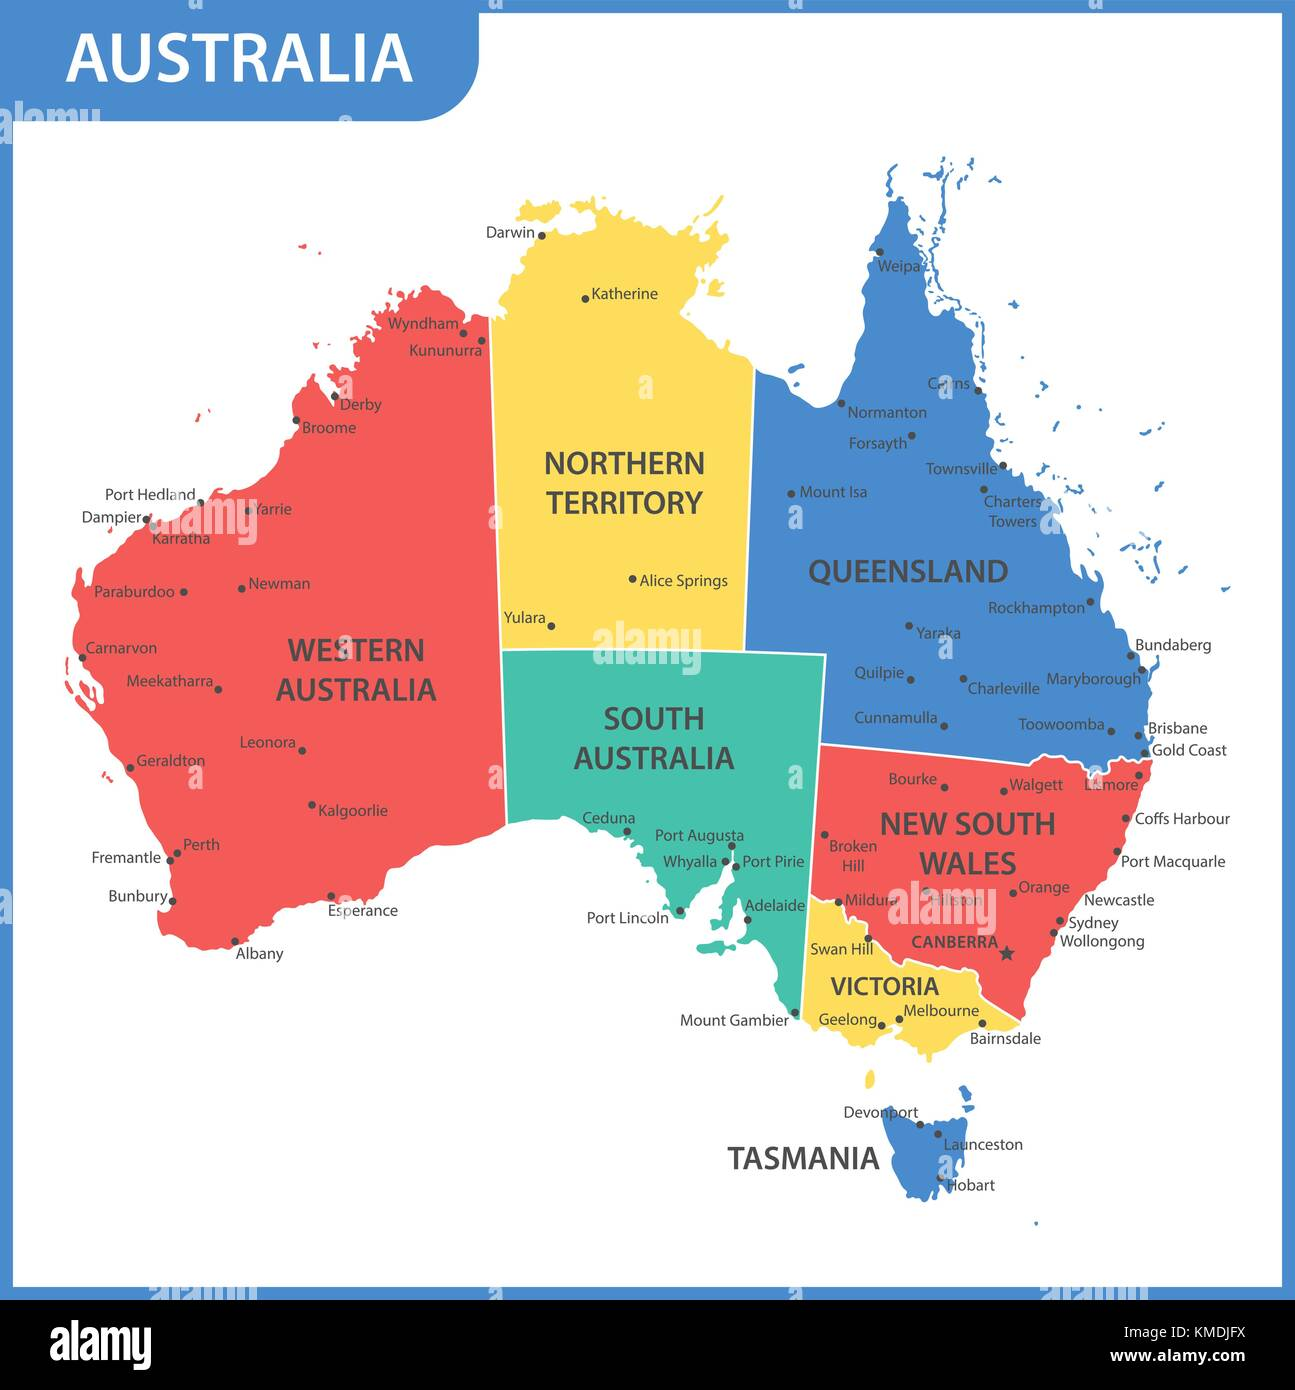 Australia Map States And Cities.The Detailed Map Of The Australia With Regions Or States And Cities